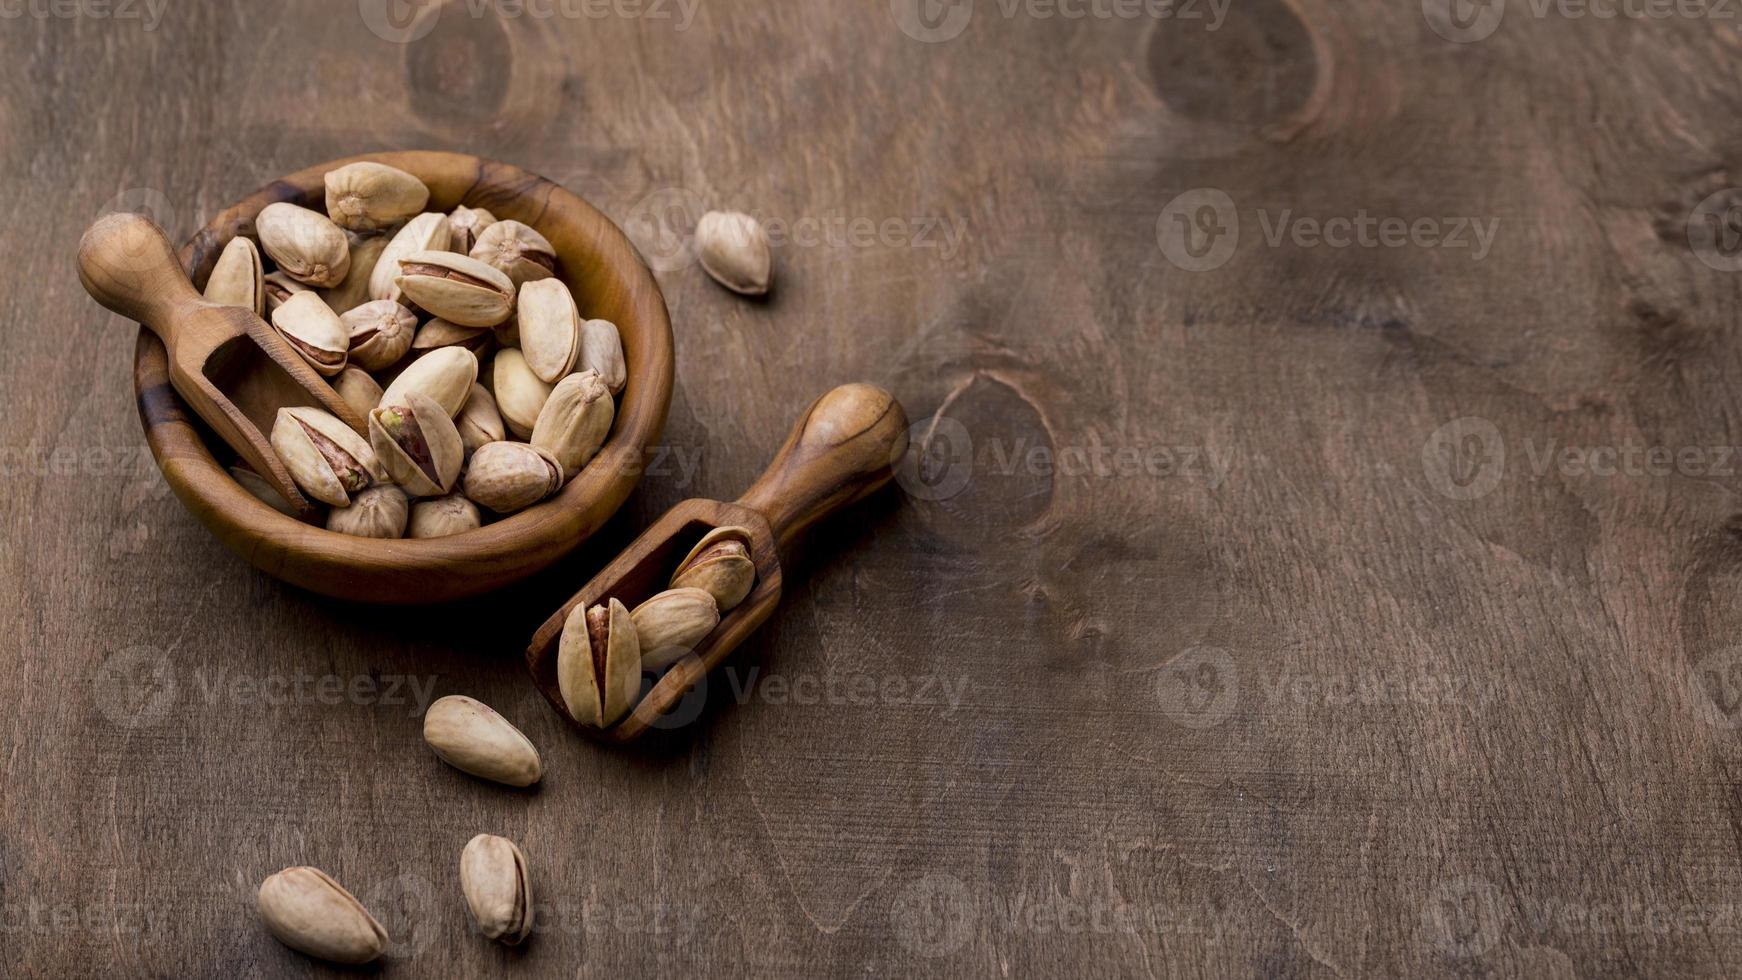 Roasted pistachio nuts on wooden table photo